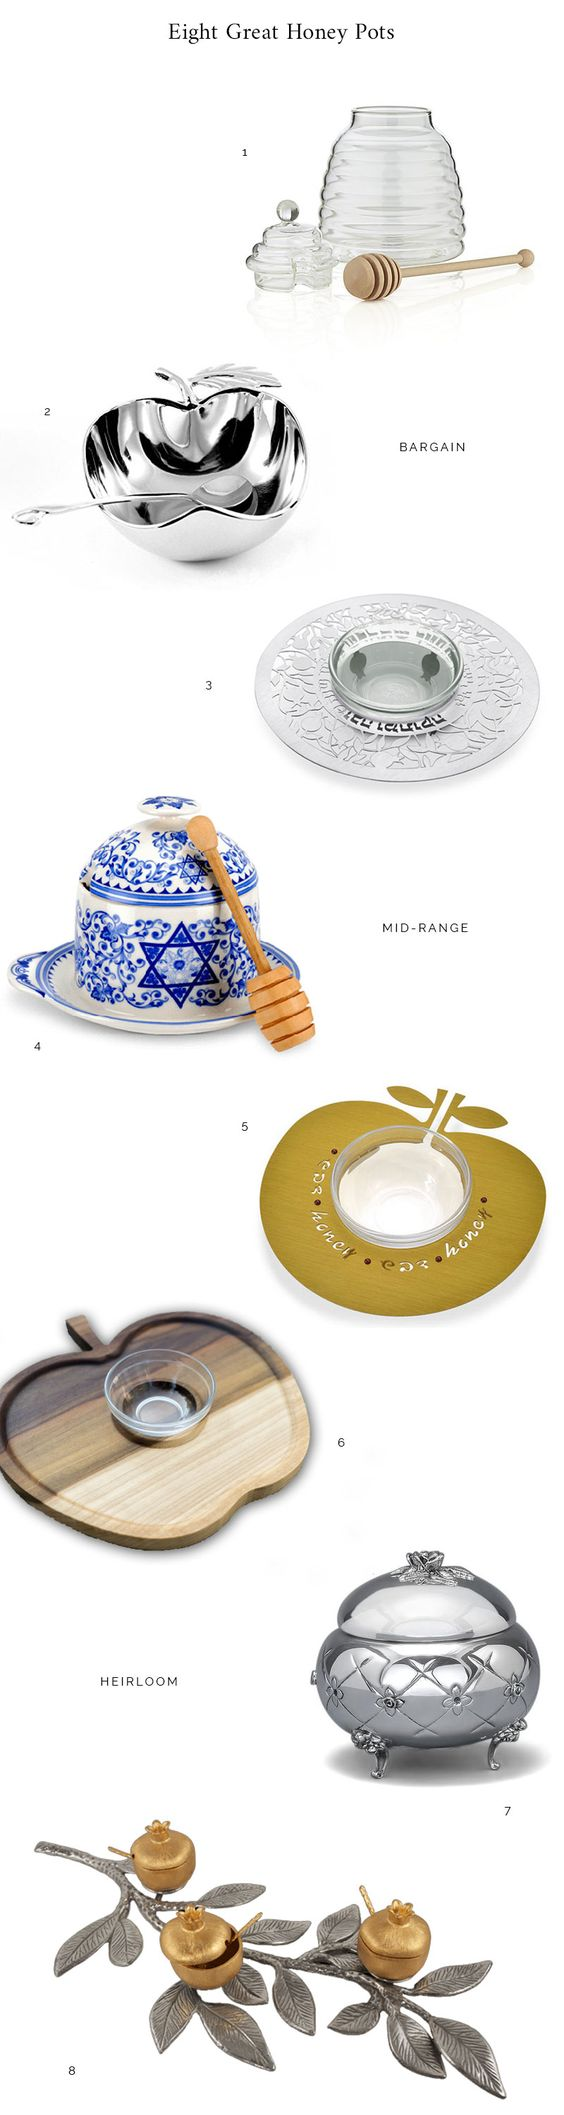 Eight Great Honey Pots for Rosh Hashanah   Chai & Home // we've got the first honey pot but another couldn't hurt!